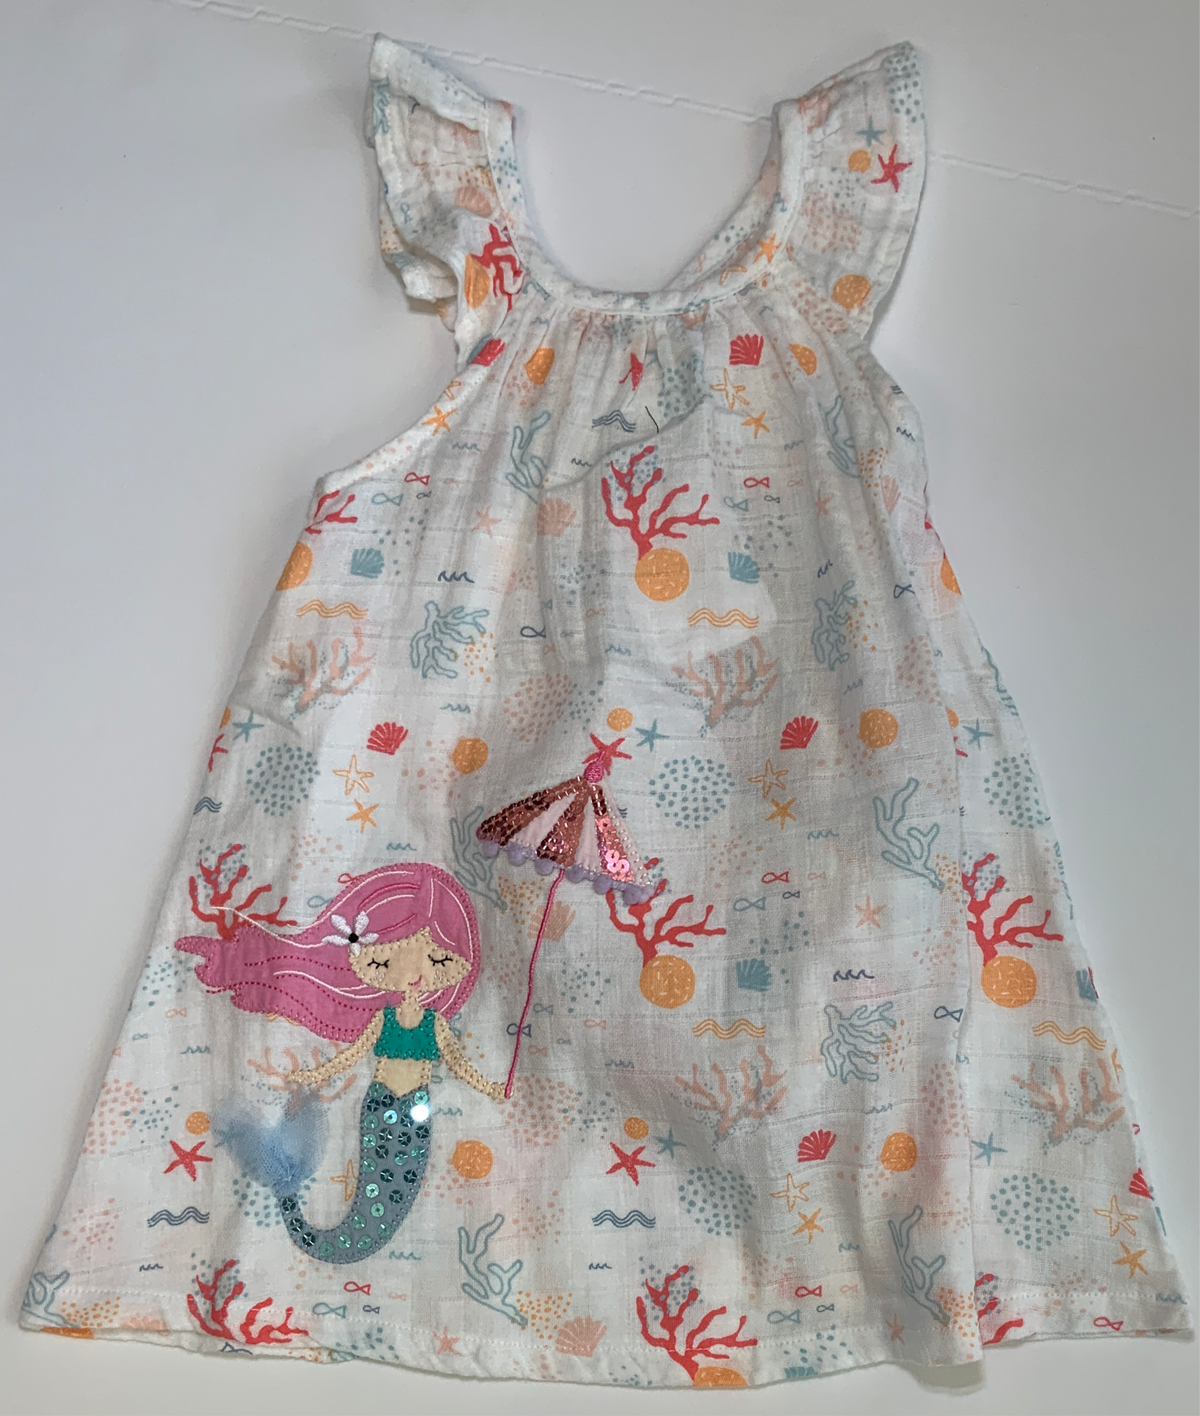 MPie Mermaid Dress Muslin Applique Dress